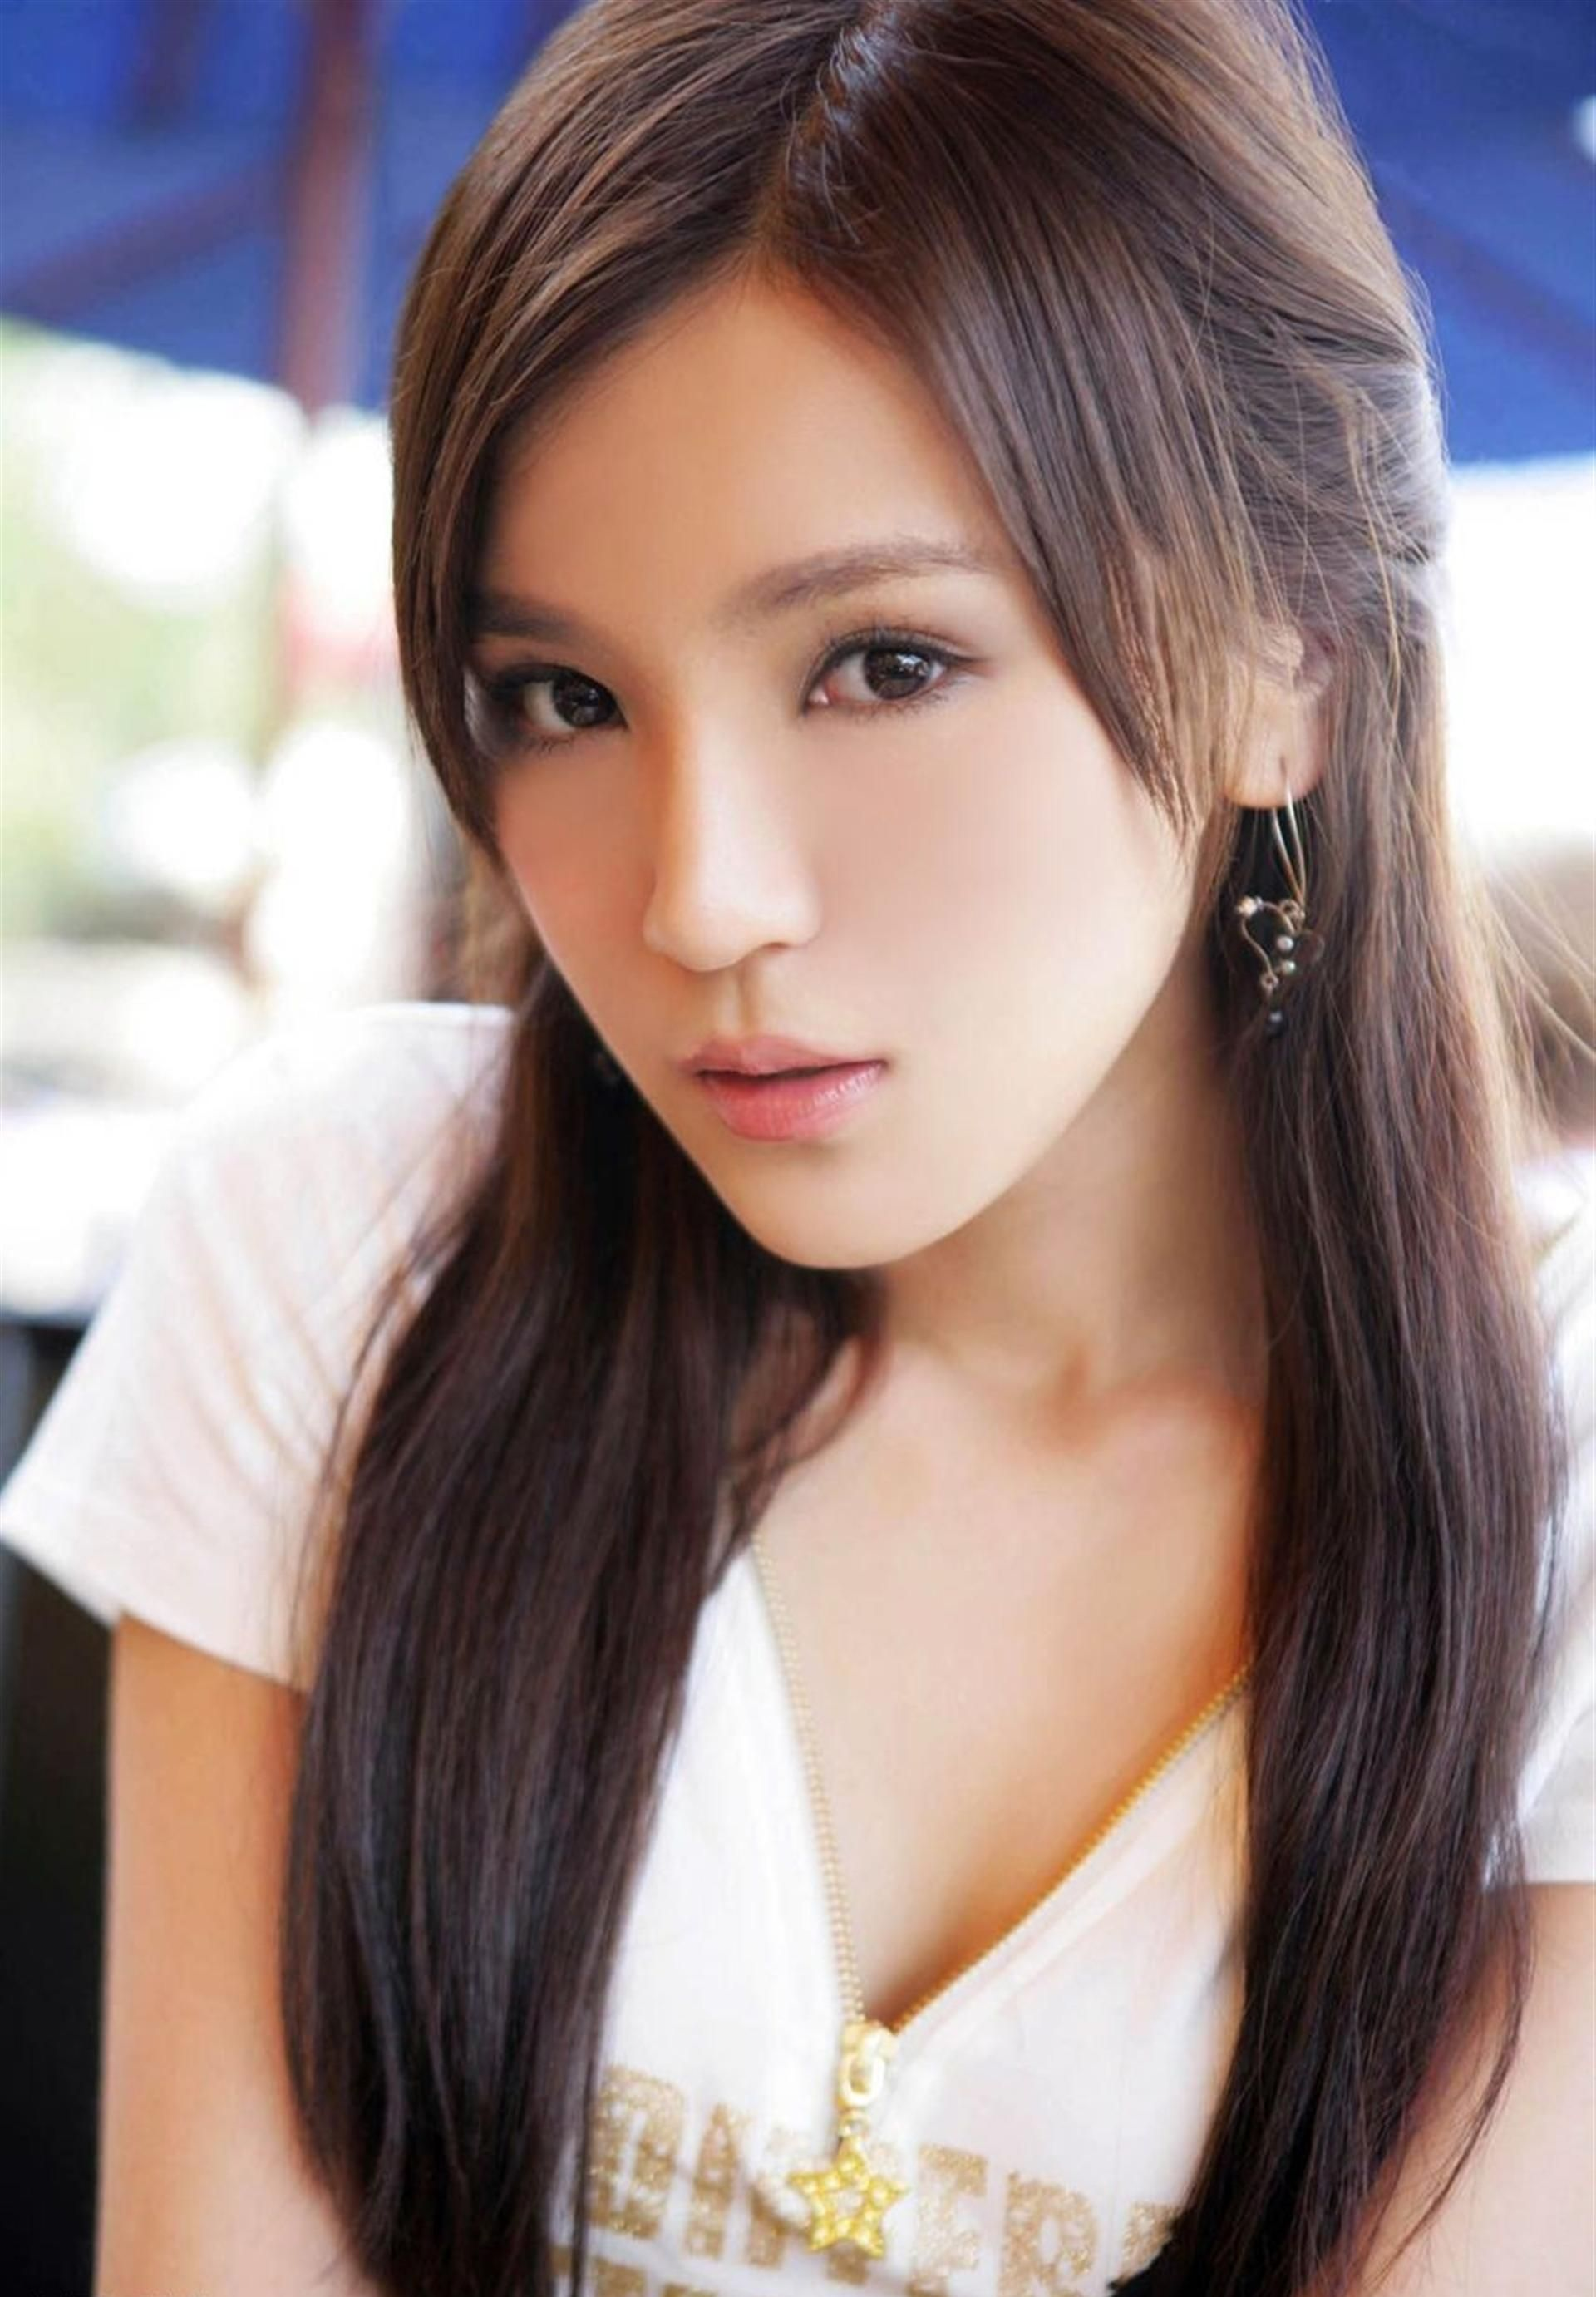 Chinese girl hair style-9702